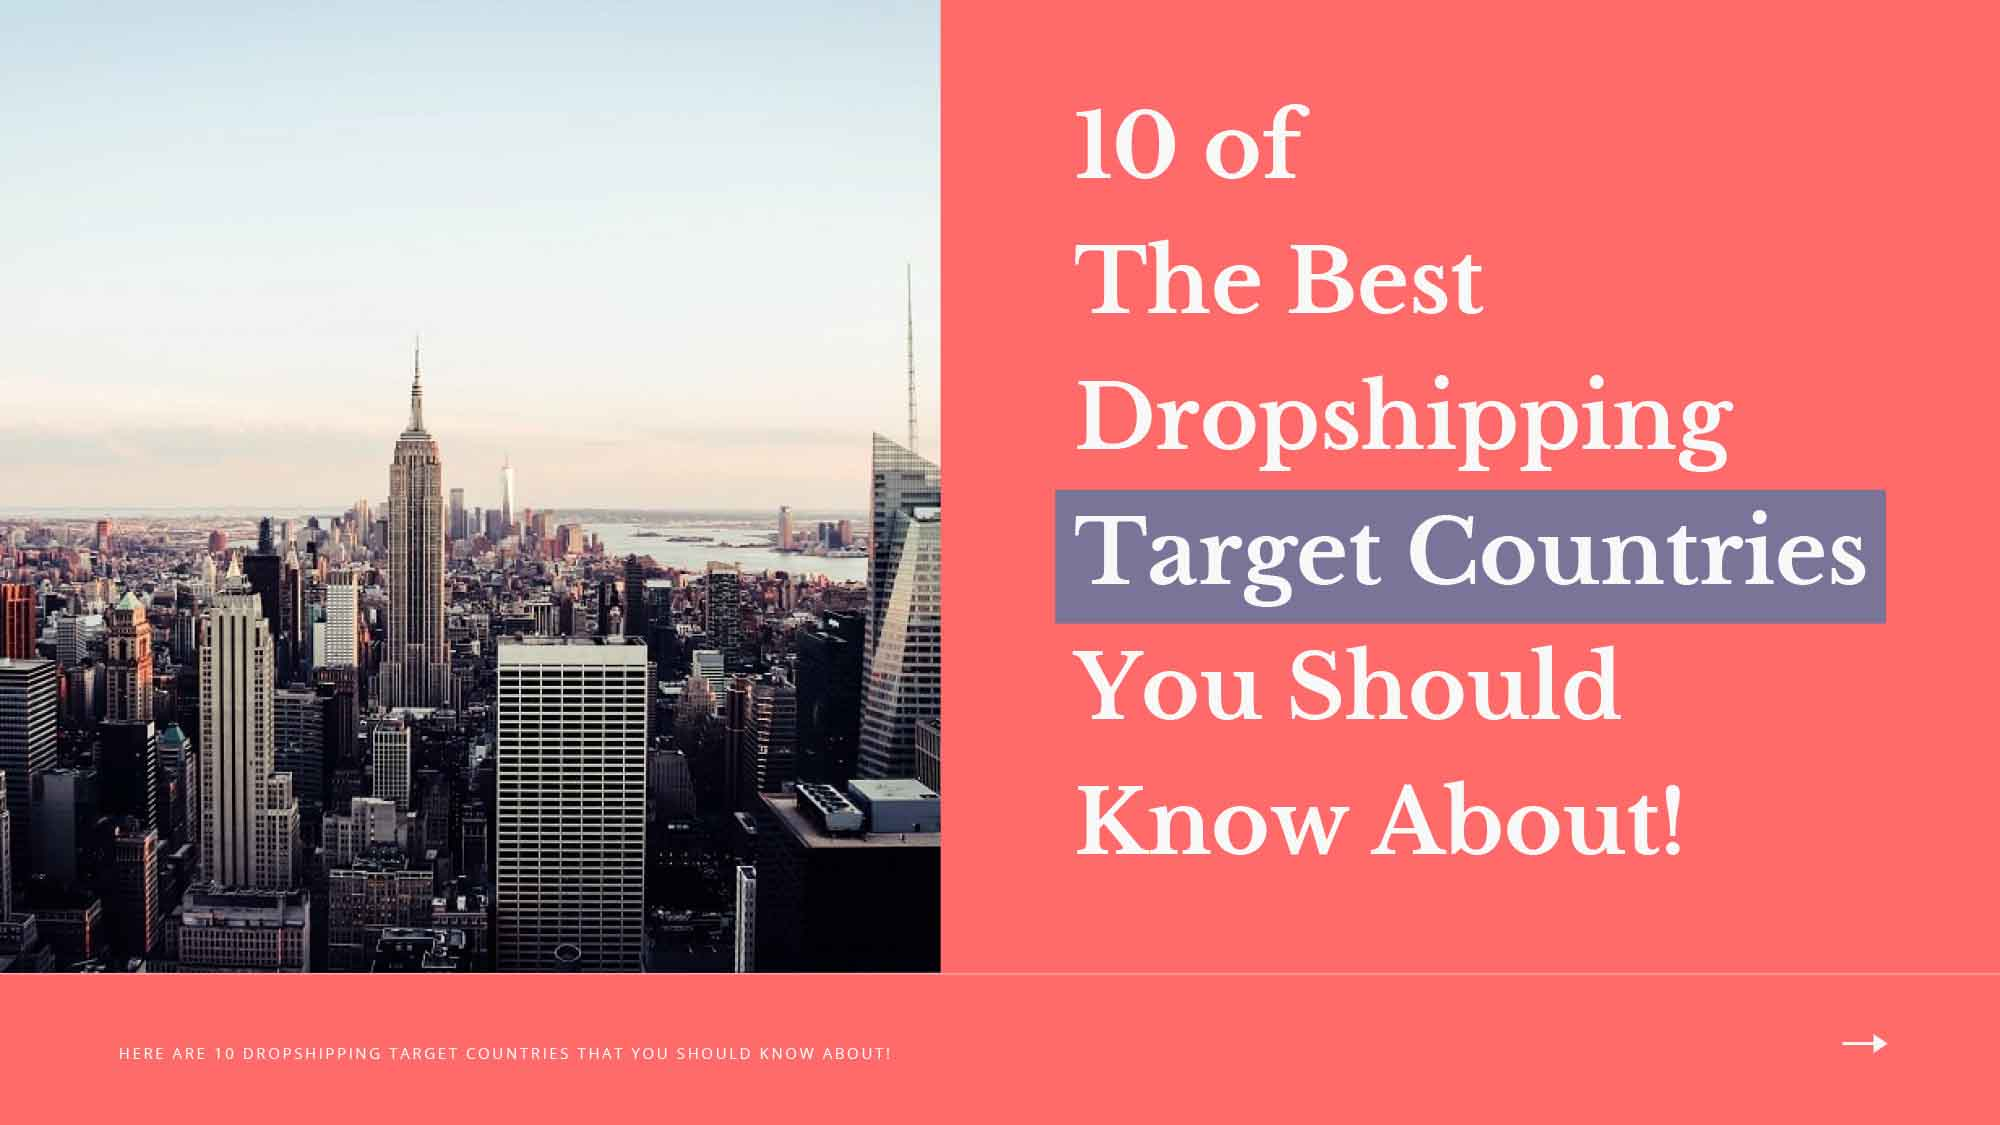 10 Of The Best Dropshipping Target Countries You Should Know About!